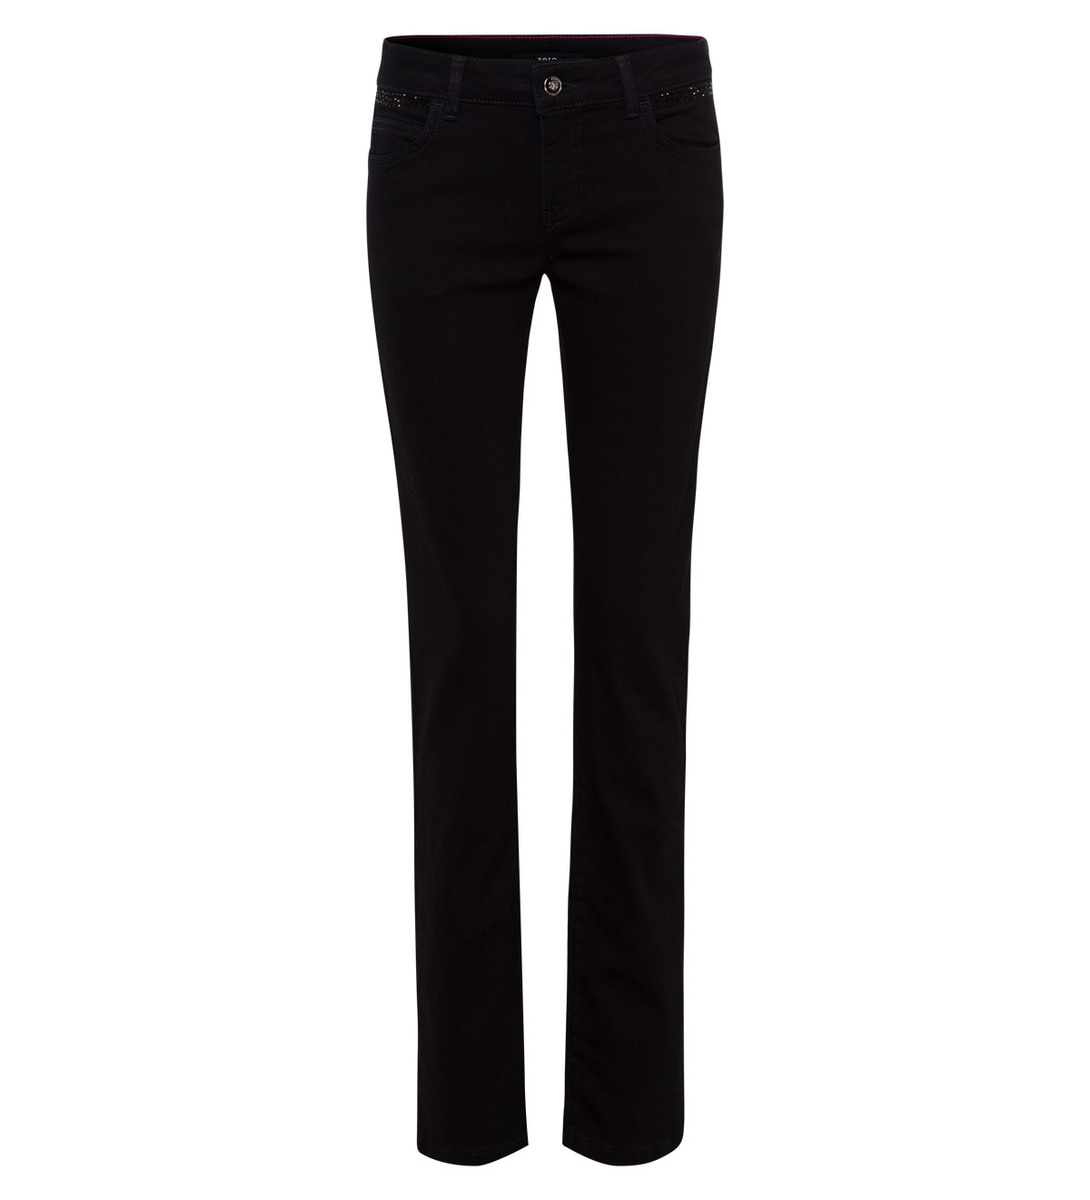 Jeans mit Glitzersteinen 32 Inch in black